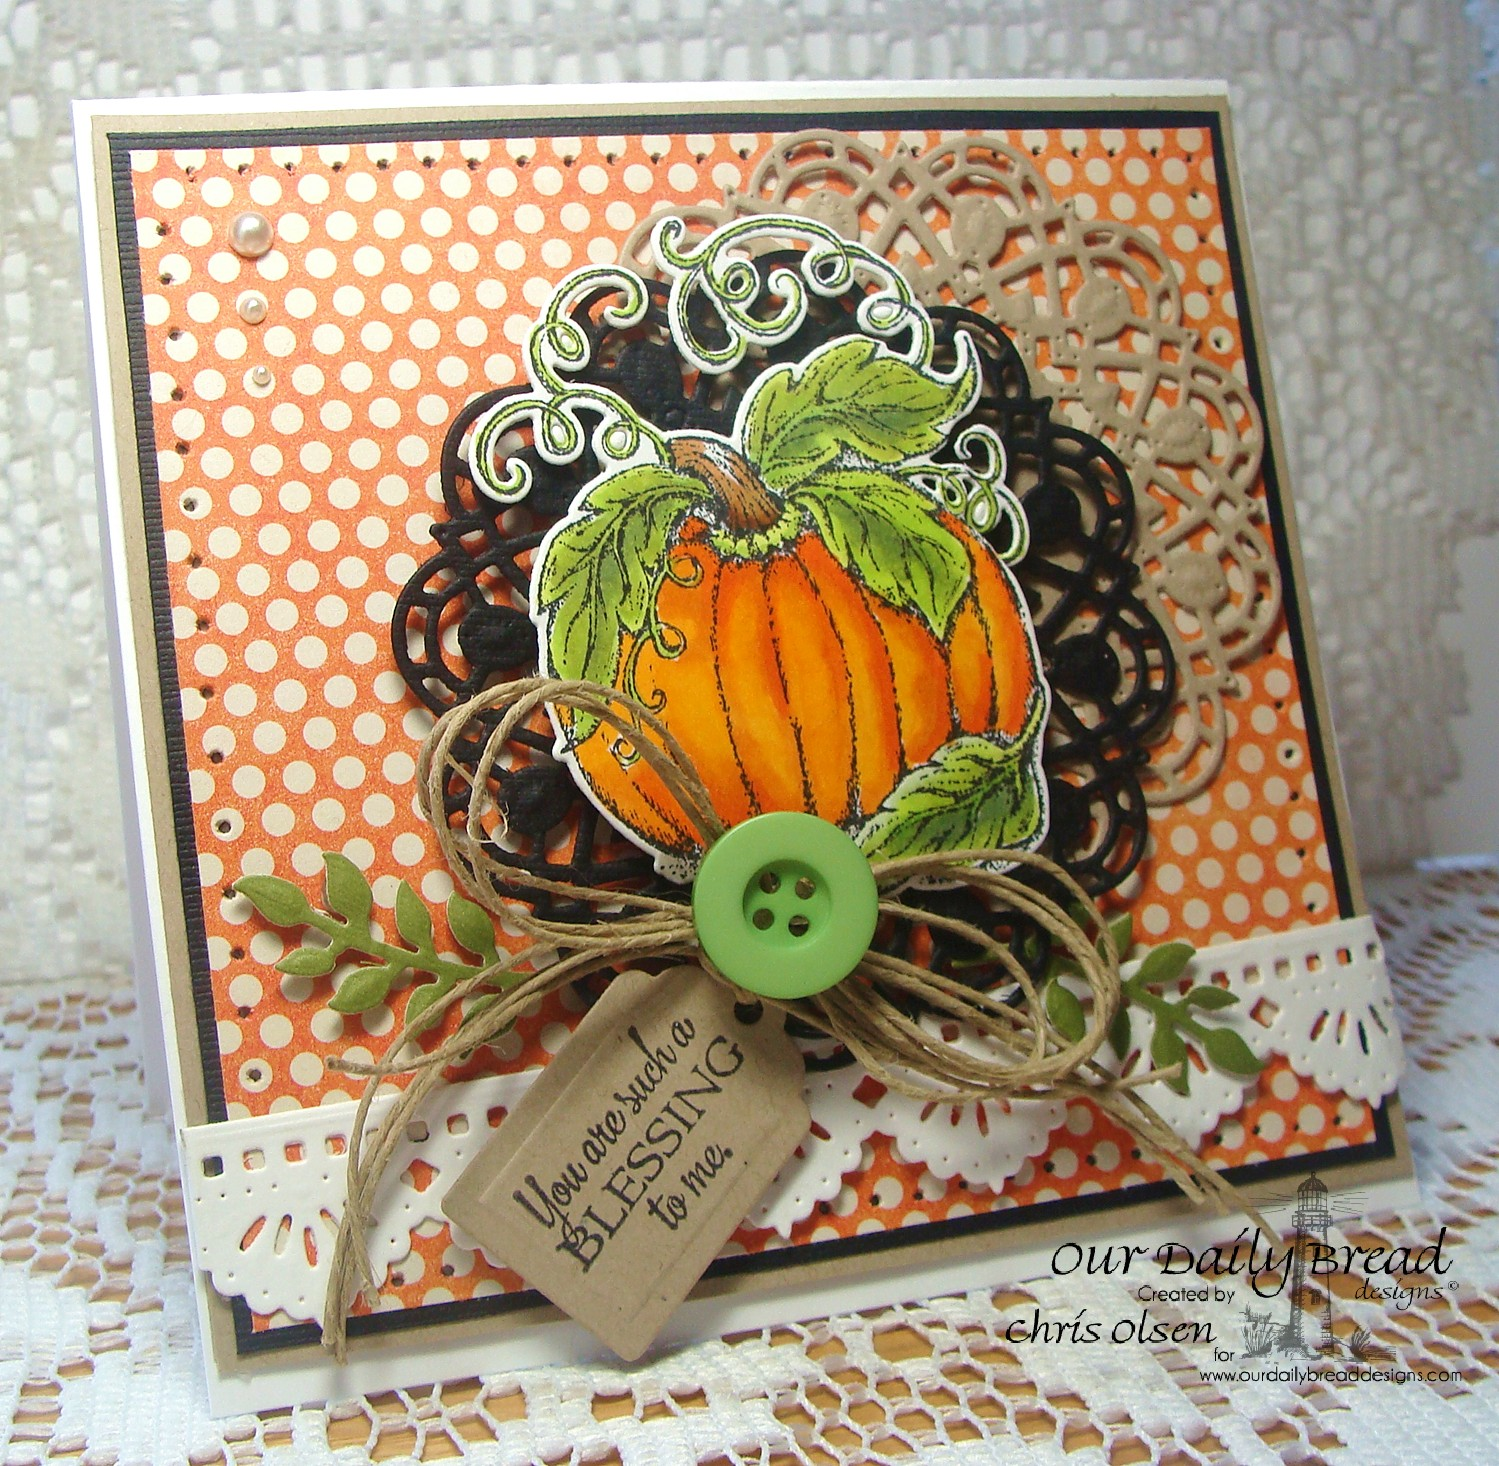 Stamps - Our Daily Bread Designs Pumpkin Single, Doily Blessings, ODBD Custom Fancy Foliage Die,  ODBD Custom Recipe Card and Tags Dies, ODBD Custom Doily Dies,  ODBD Custom Beautiful Borders Dies, ODBD Custom Pumpkin Die